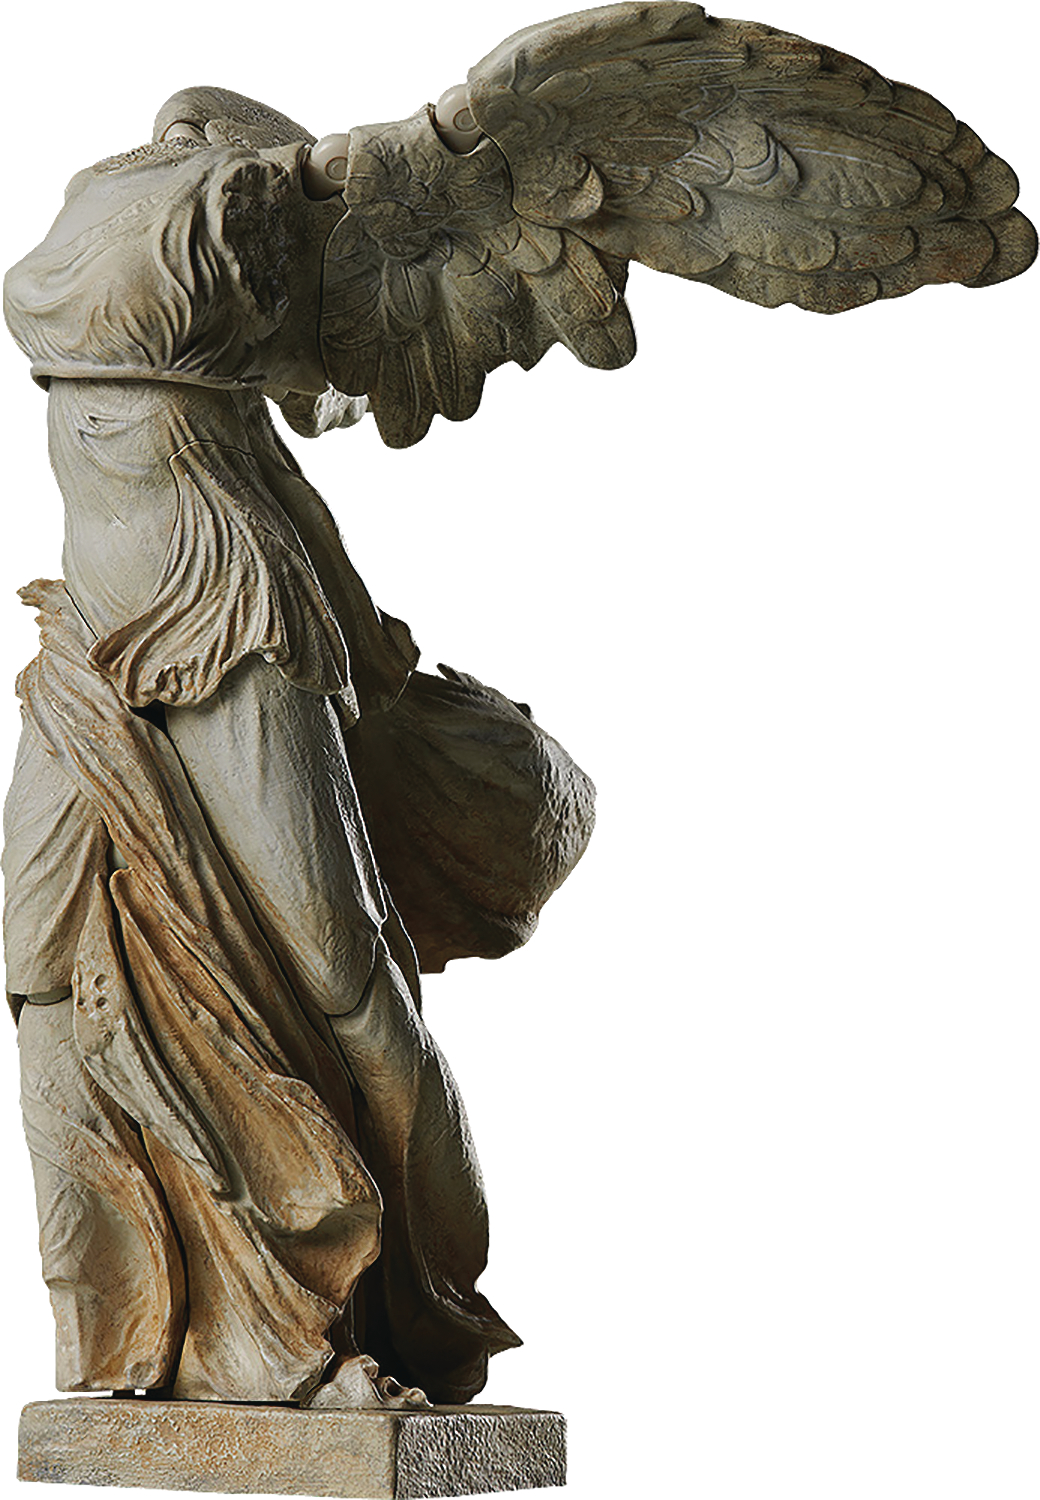 TABLE MUSEUM WINGED VICTORY OF SAMOTHRACE FIGMA AF